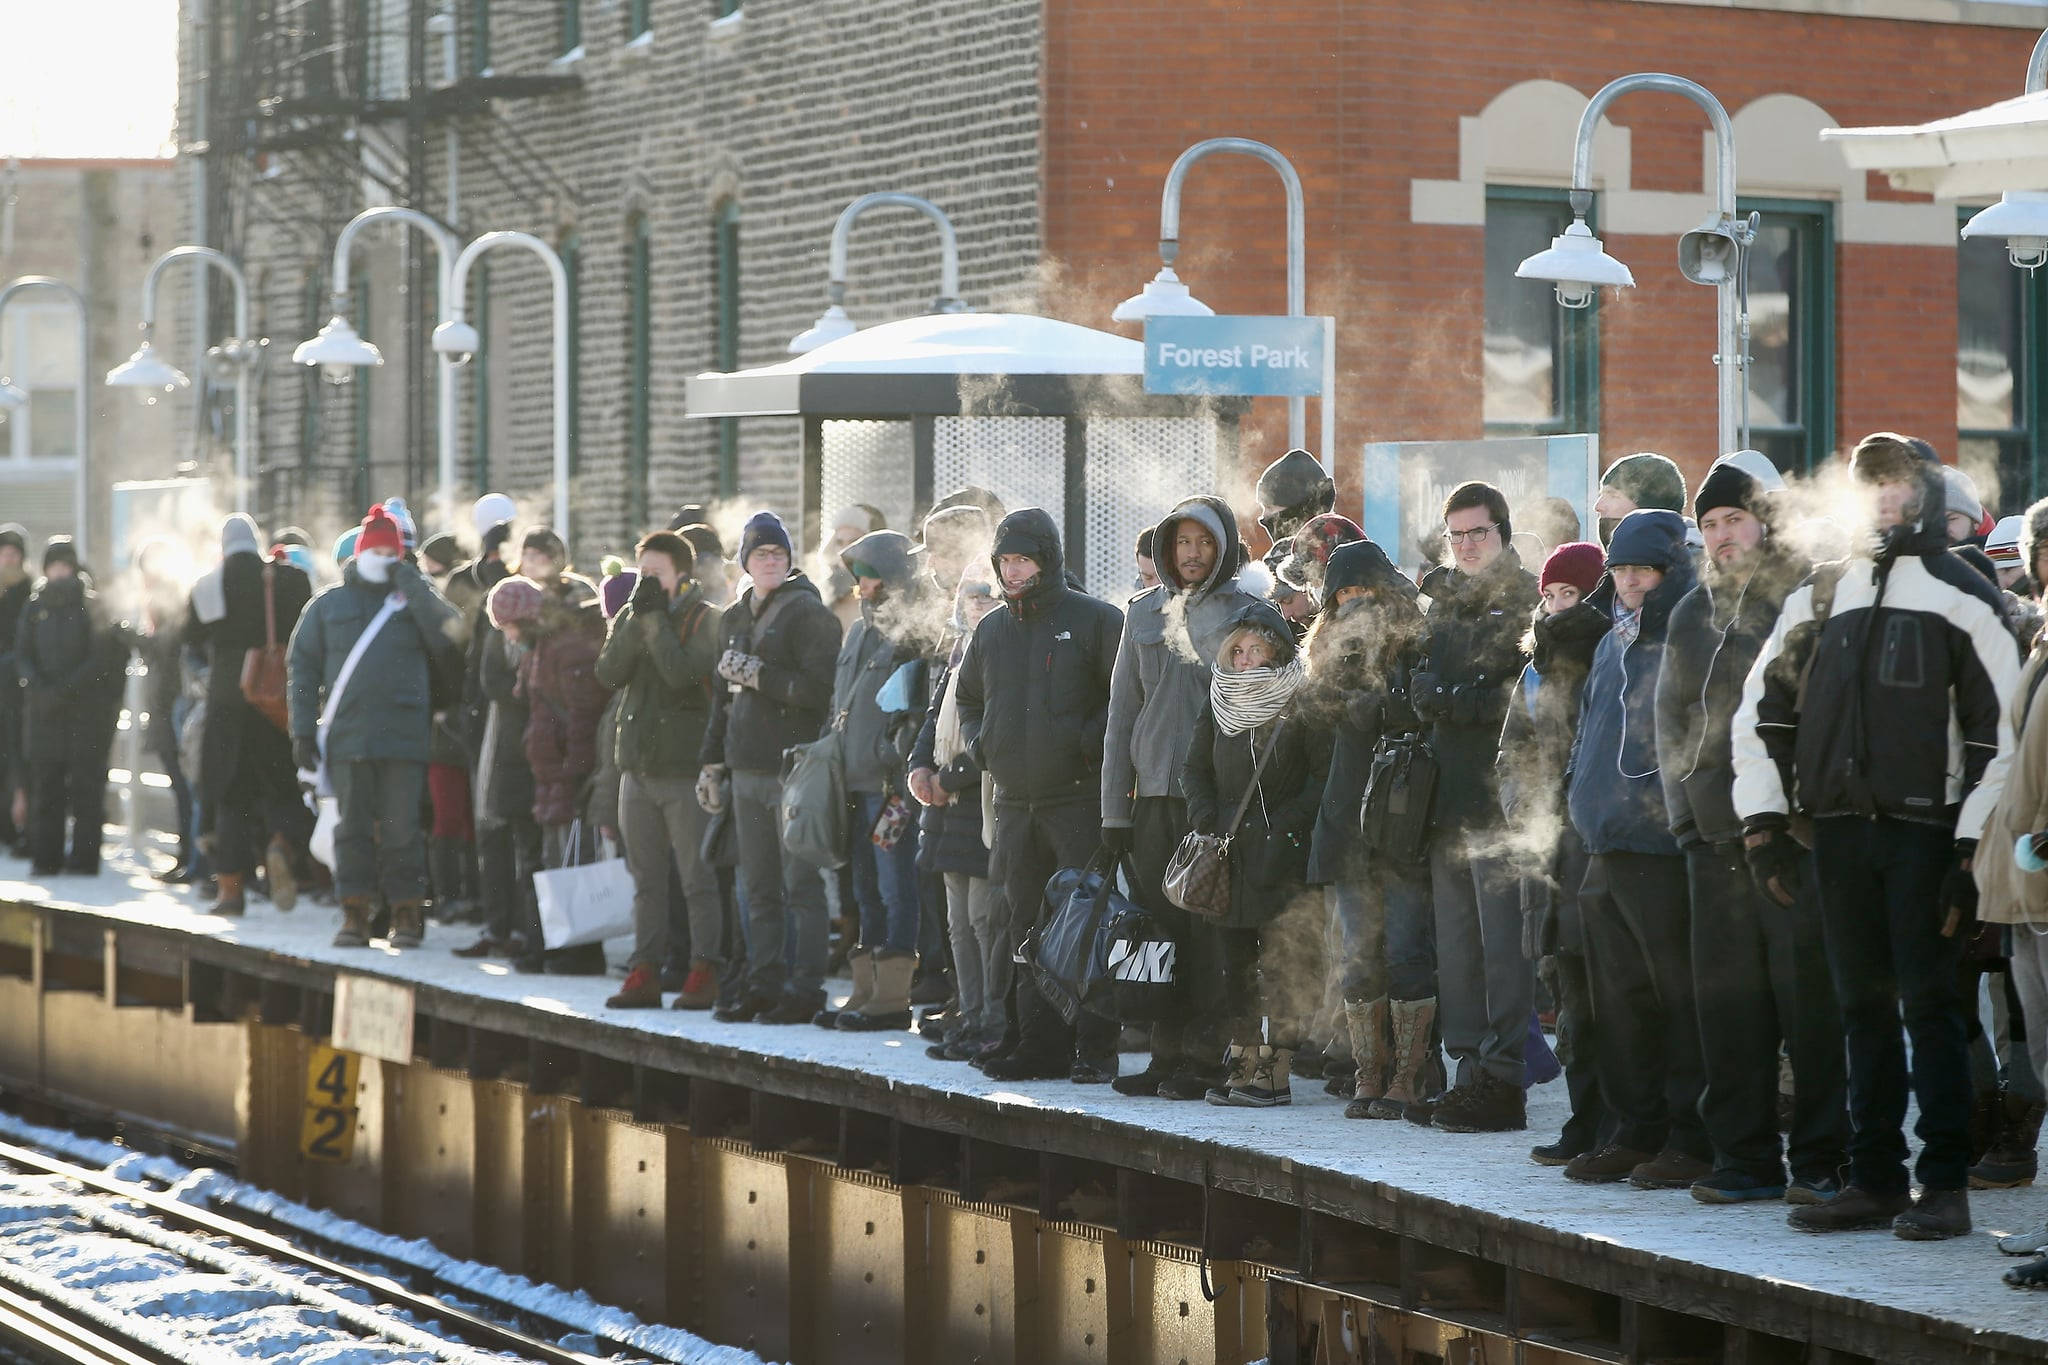 Chicagoans braved the cold to wait for the train in subzero temperatures.